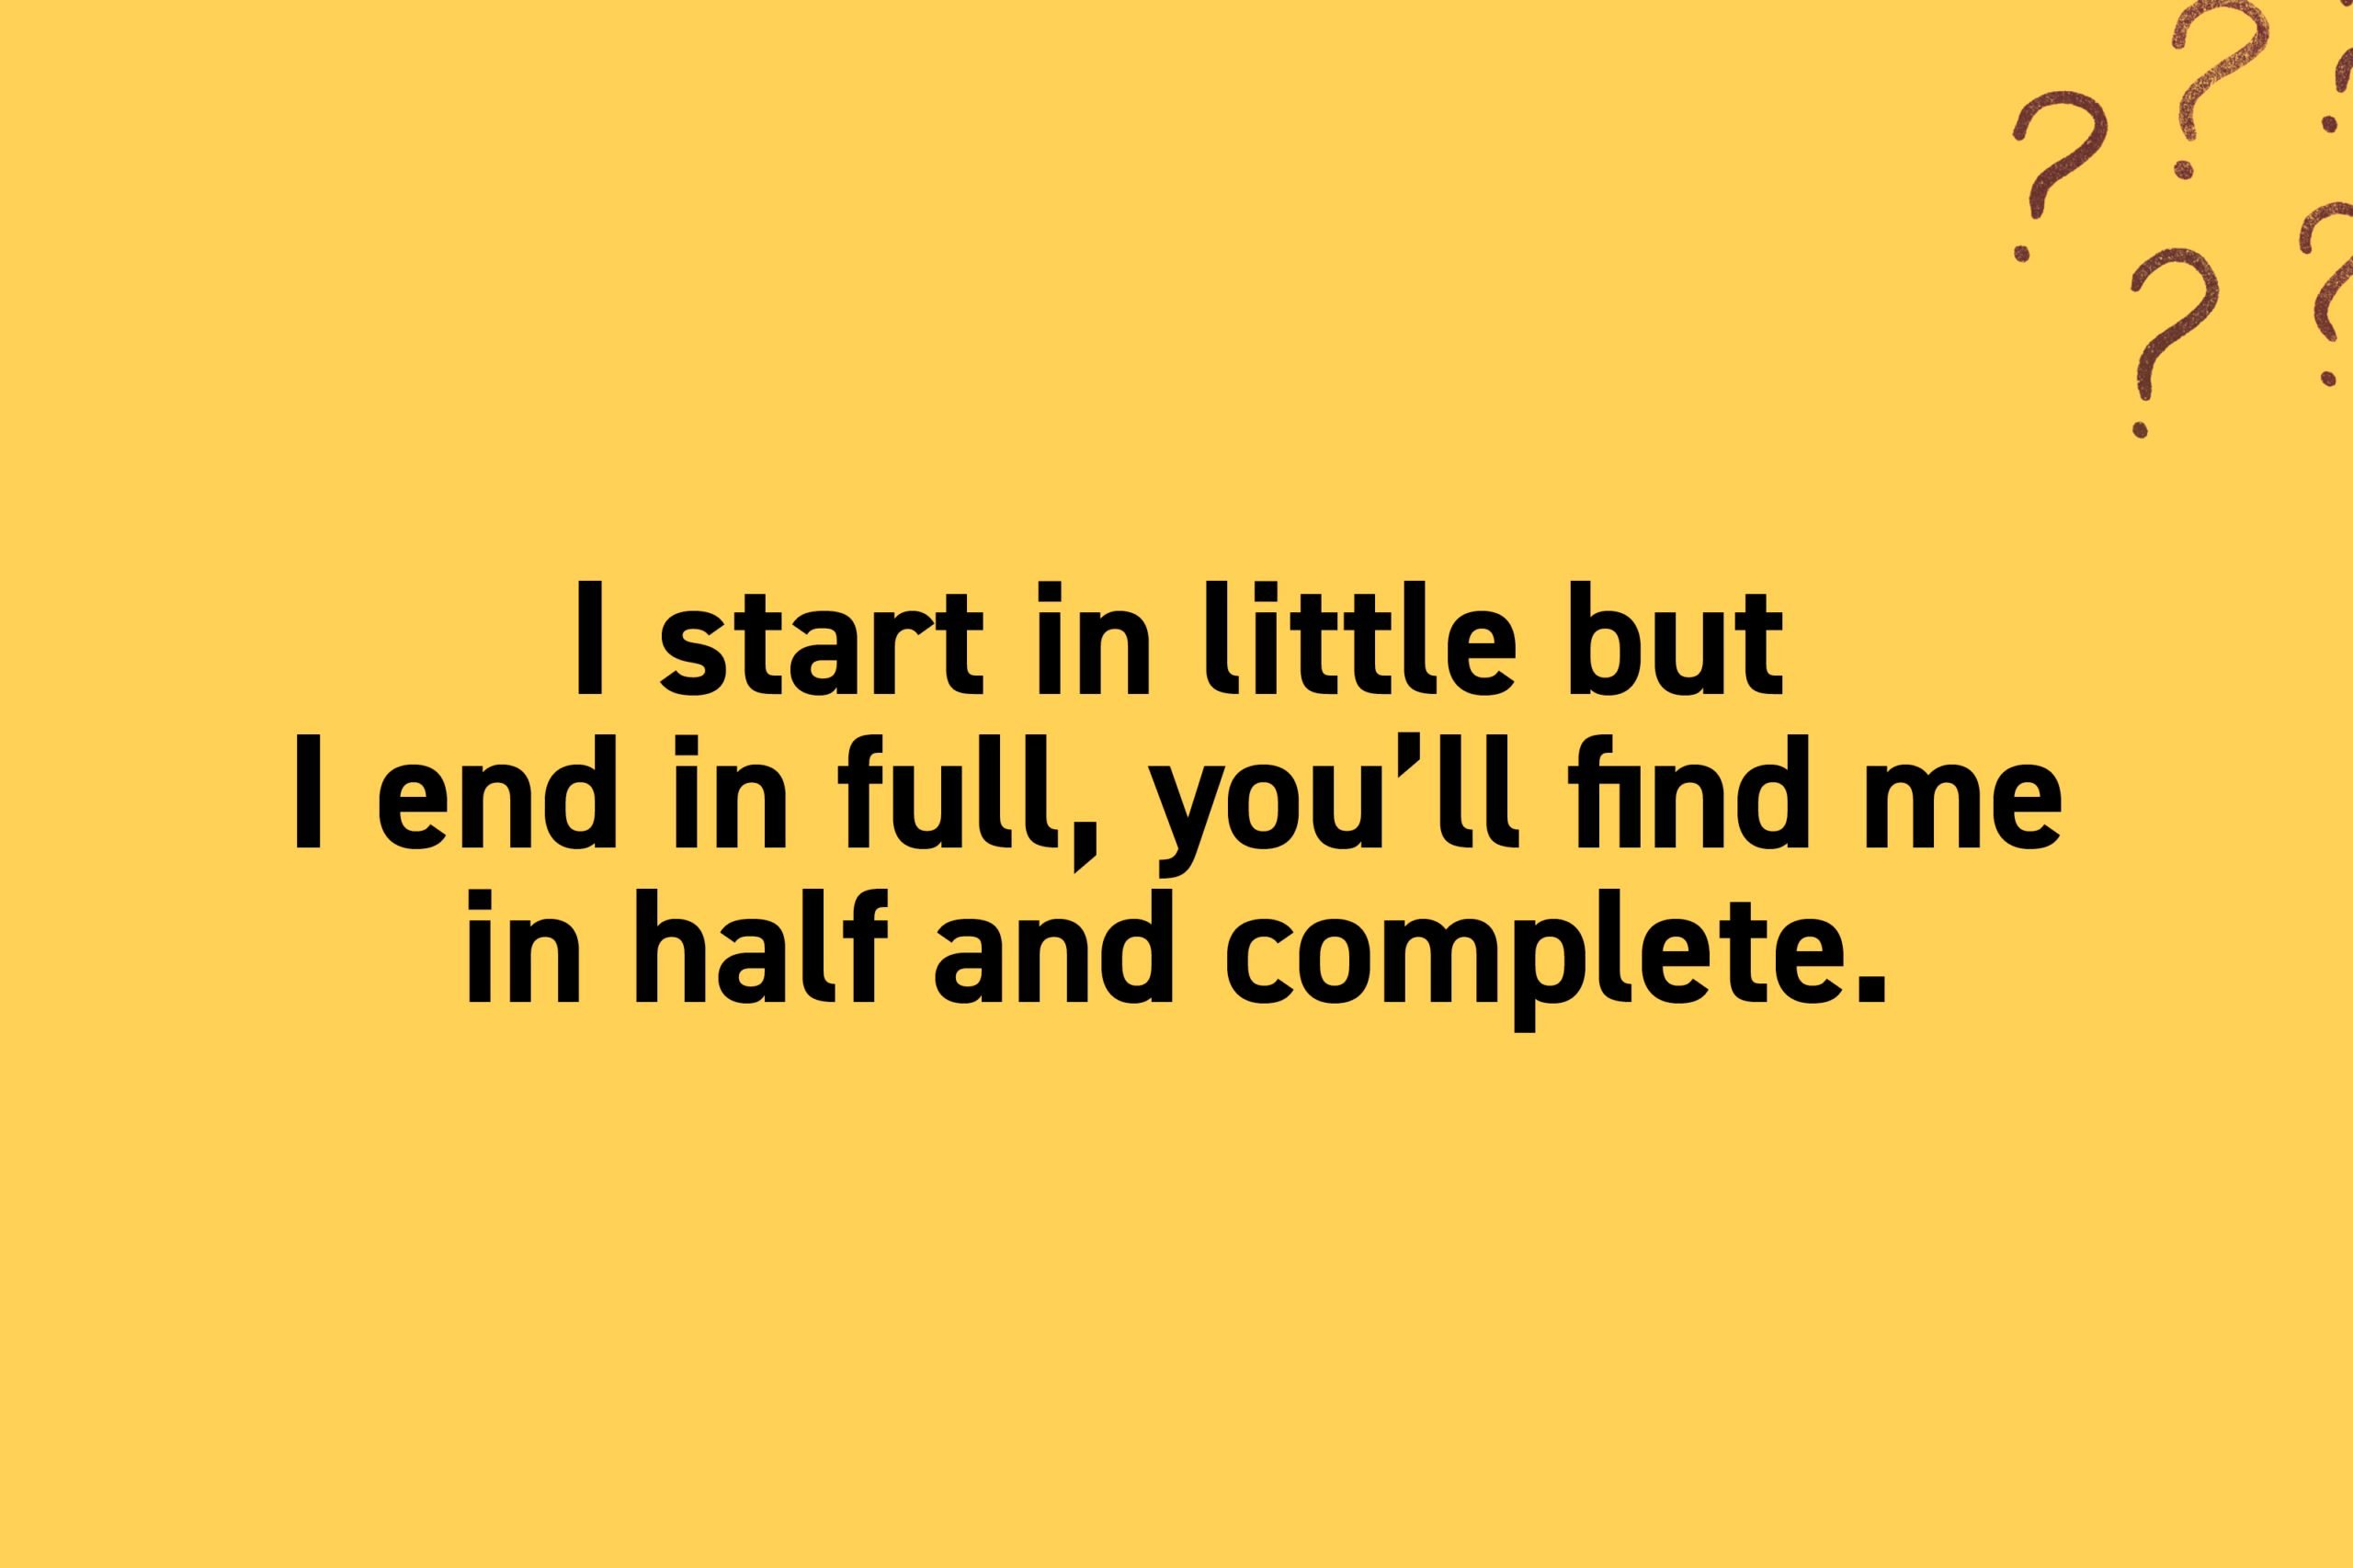 I start in little but I end in full, you'll find me in half and complete.